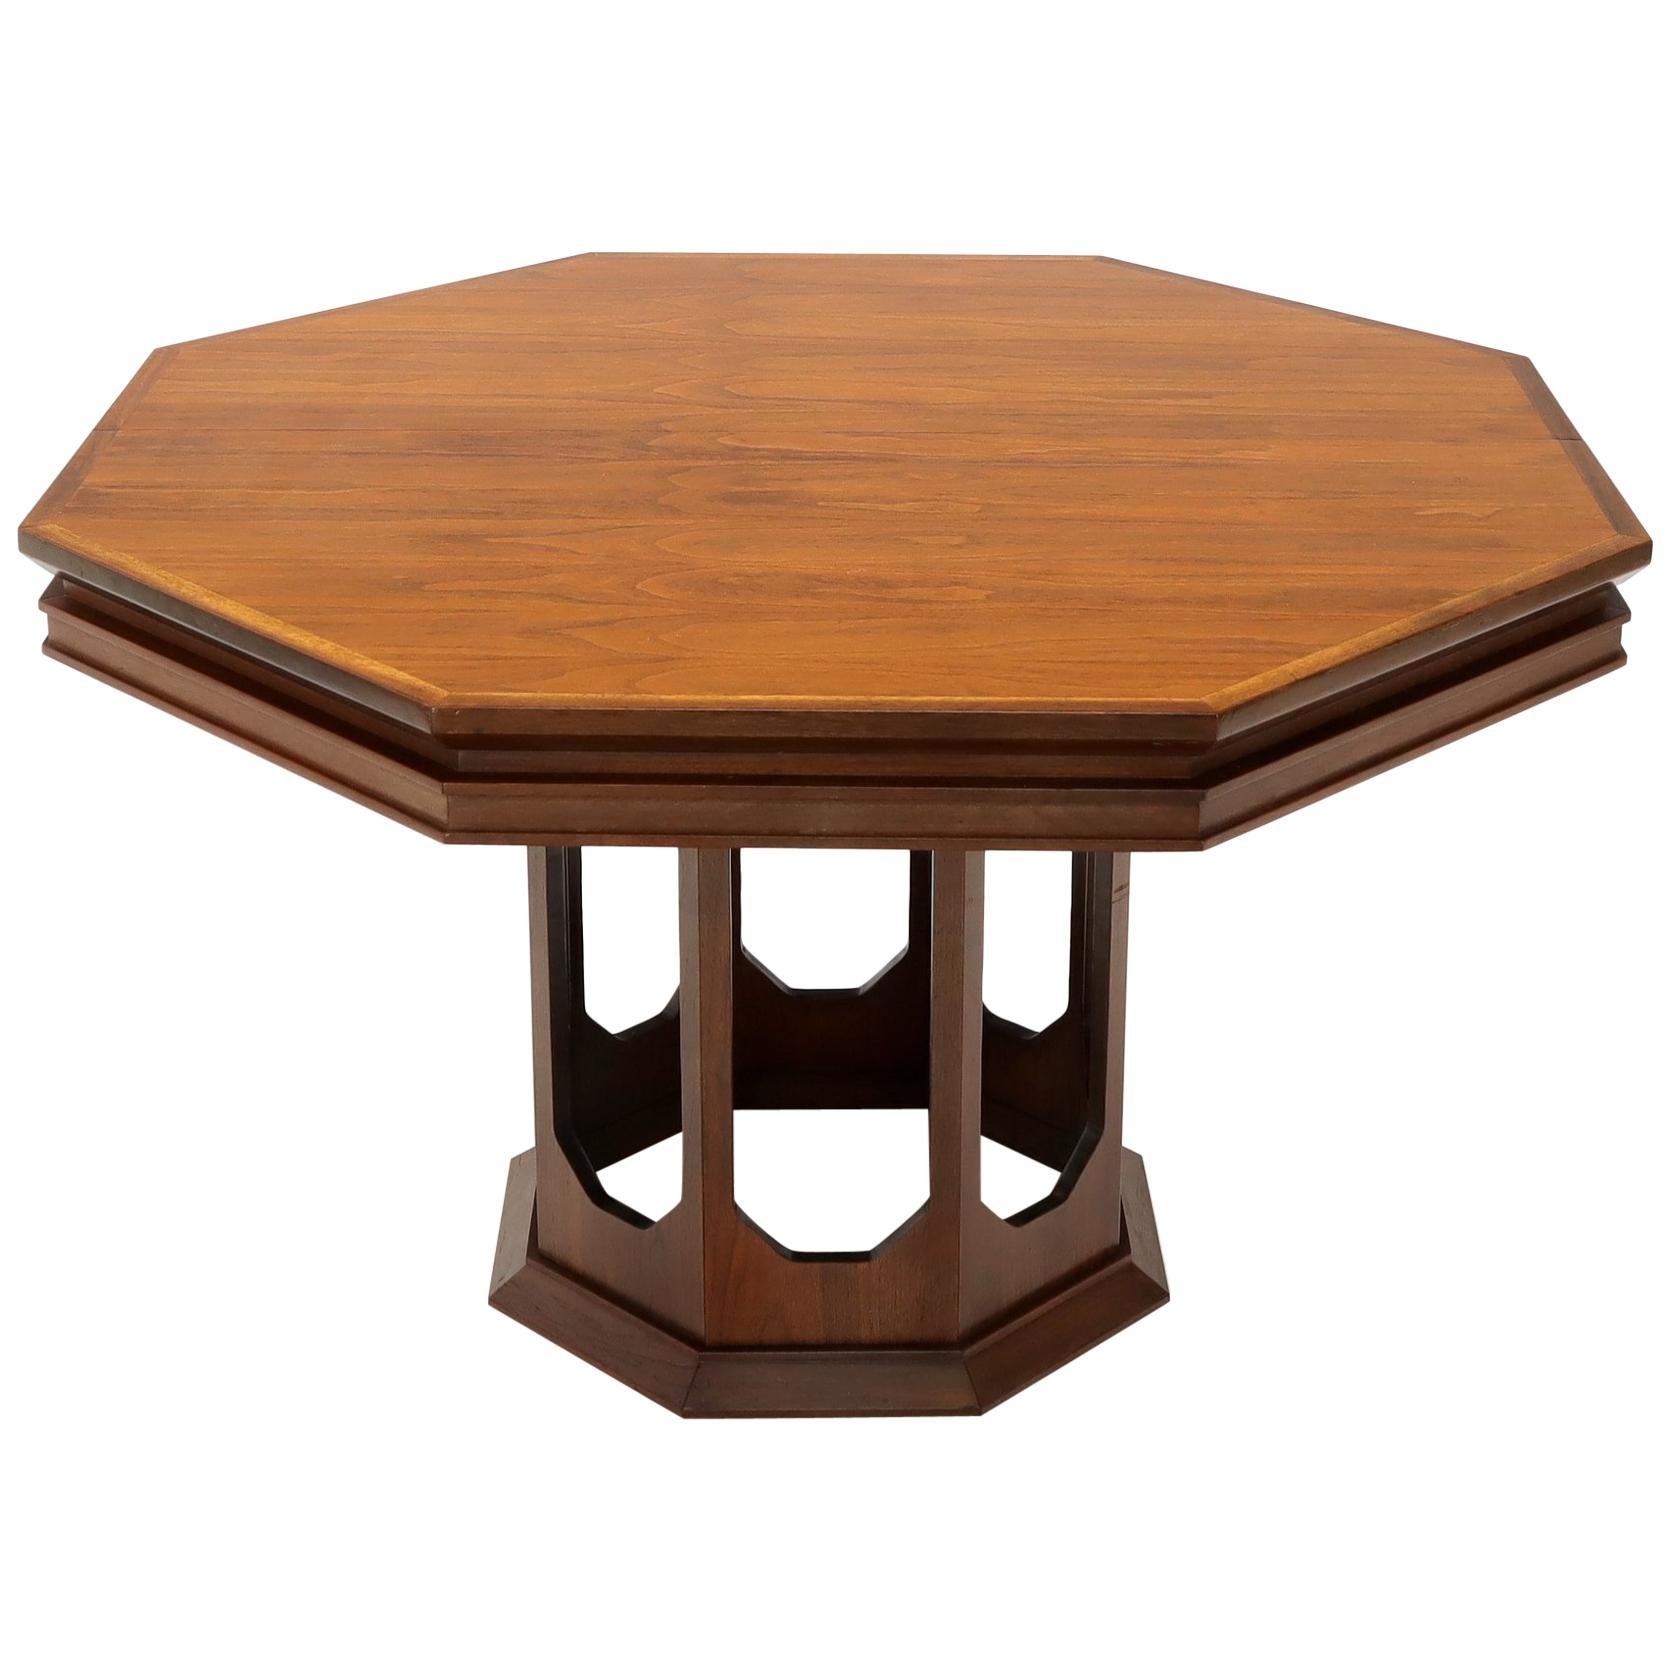 Groovy Mid Century Modern Walnut Hexagon Dining Table Pabps2019 Chair Design Images Pabps2019Com